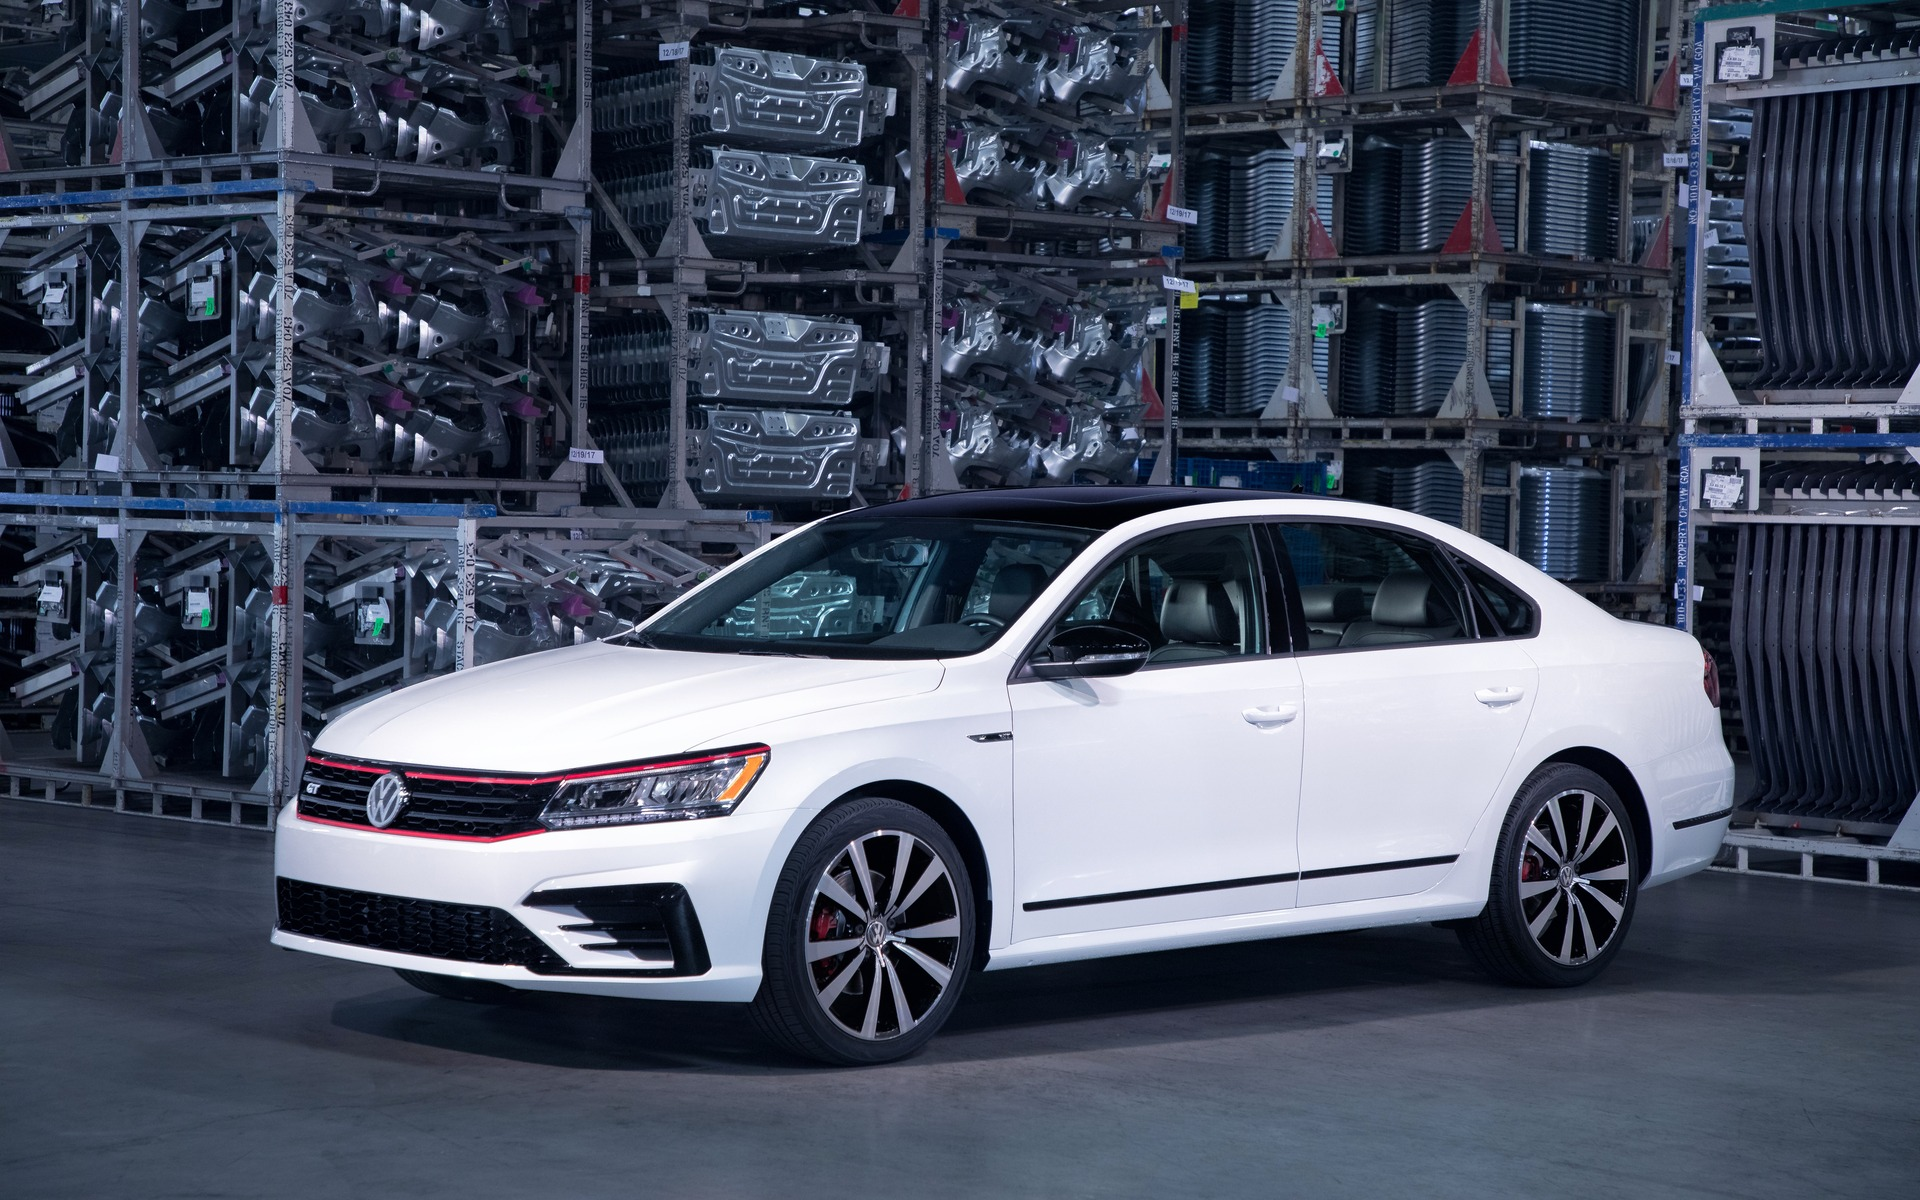 2018 Volkswagen Passat Gt Sporty And Relatively Rare The Car Guide